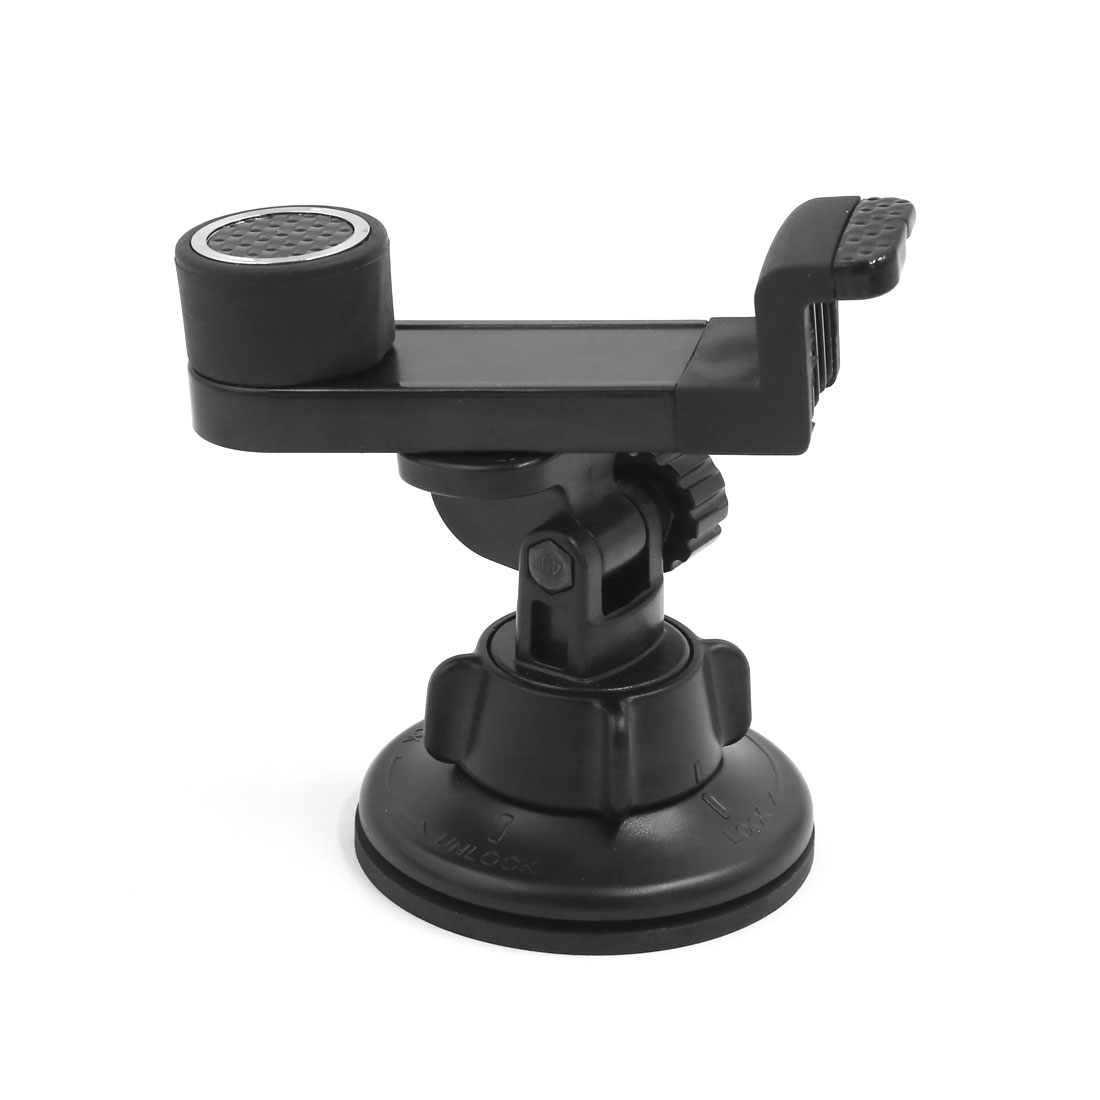 Universal 360 Degree Rotating Car Windshield Mount Holder Stand Bracket Black for Cell Phone